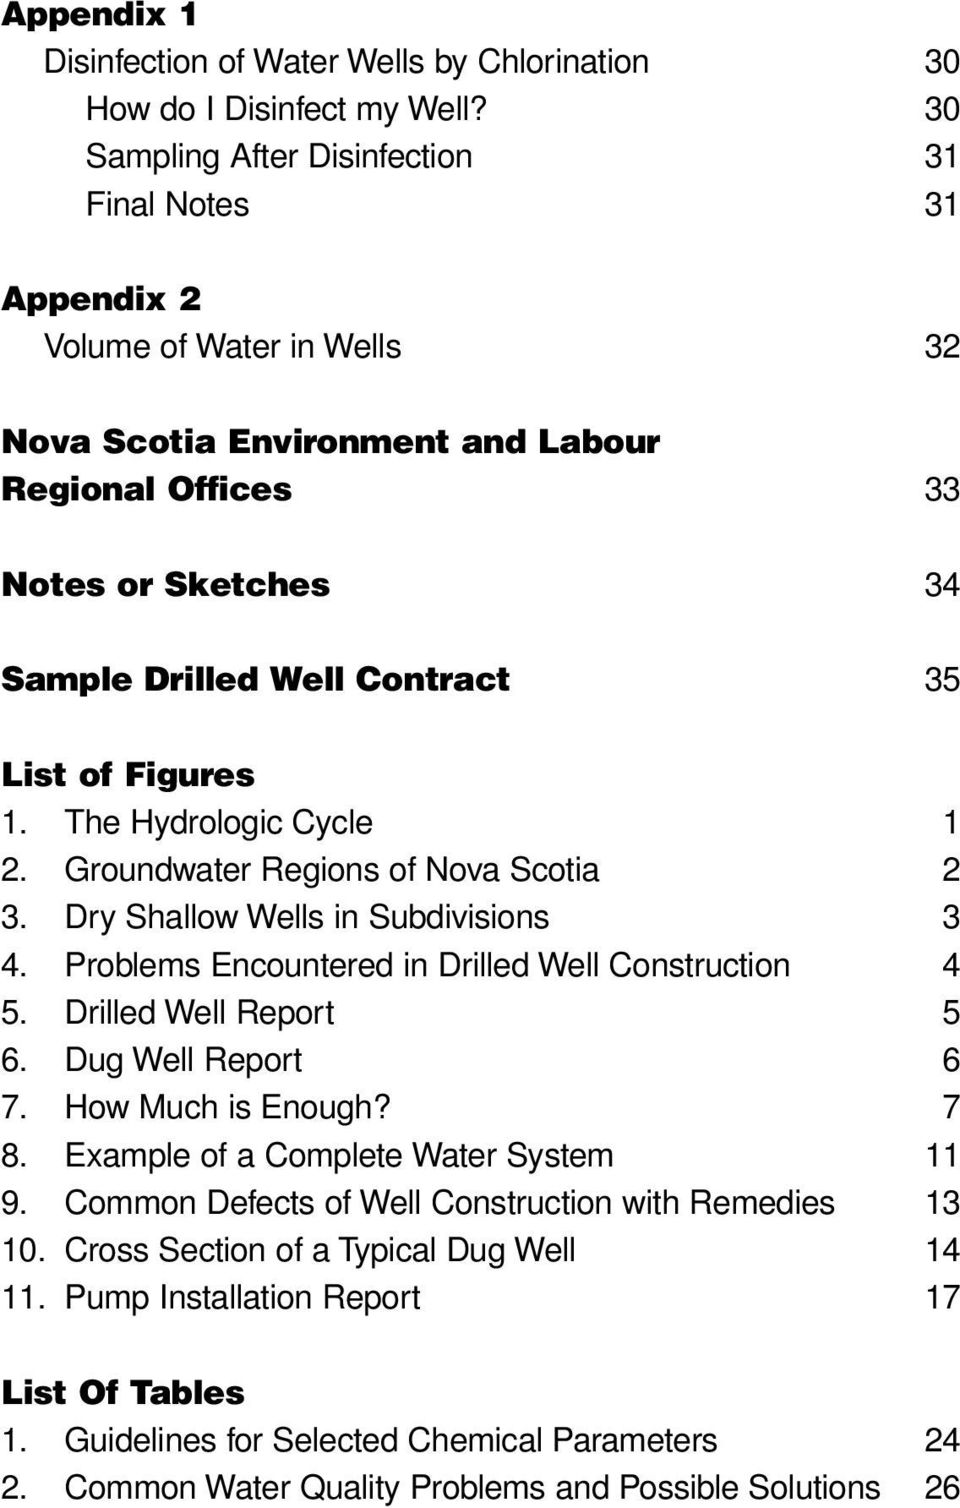 List of Figures 1. The Hydrologic Cycle 1 2. Groundwater Regions of Nova Scotia 2 3. Dry Shallow Wells in Subdivisions 3 4. Problems Encountered in Drilled Well Construction 4 5.